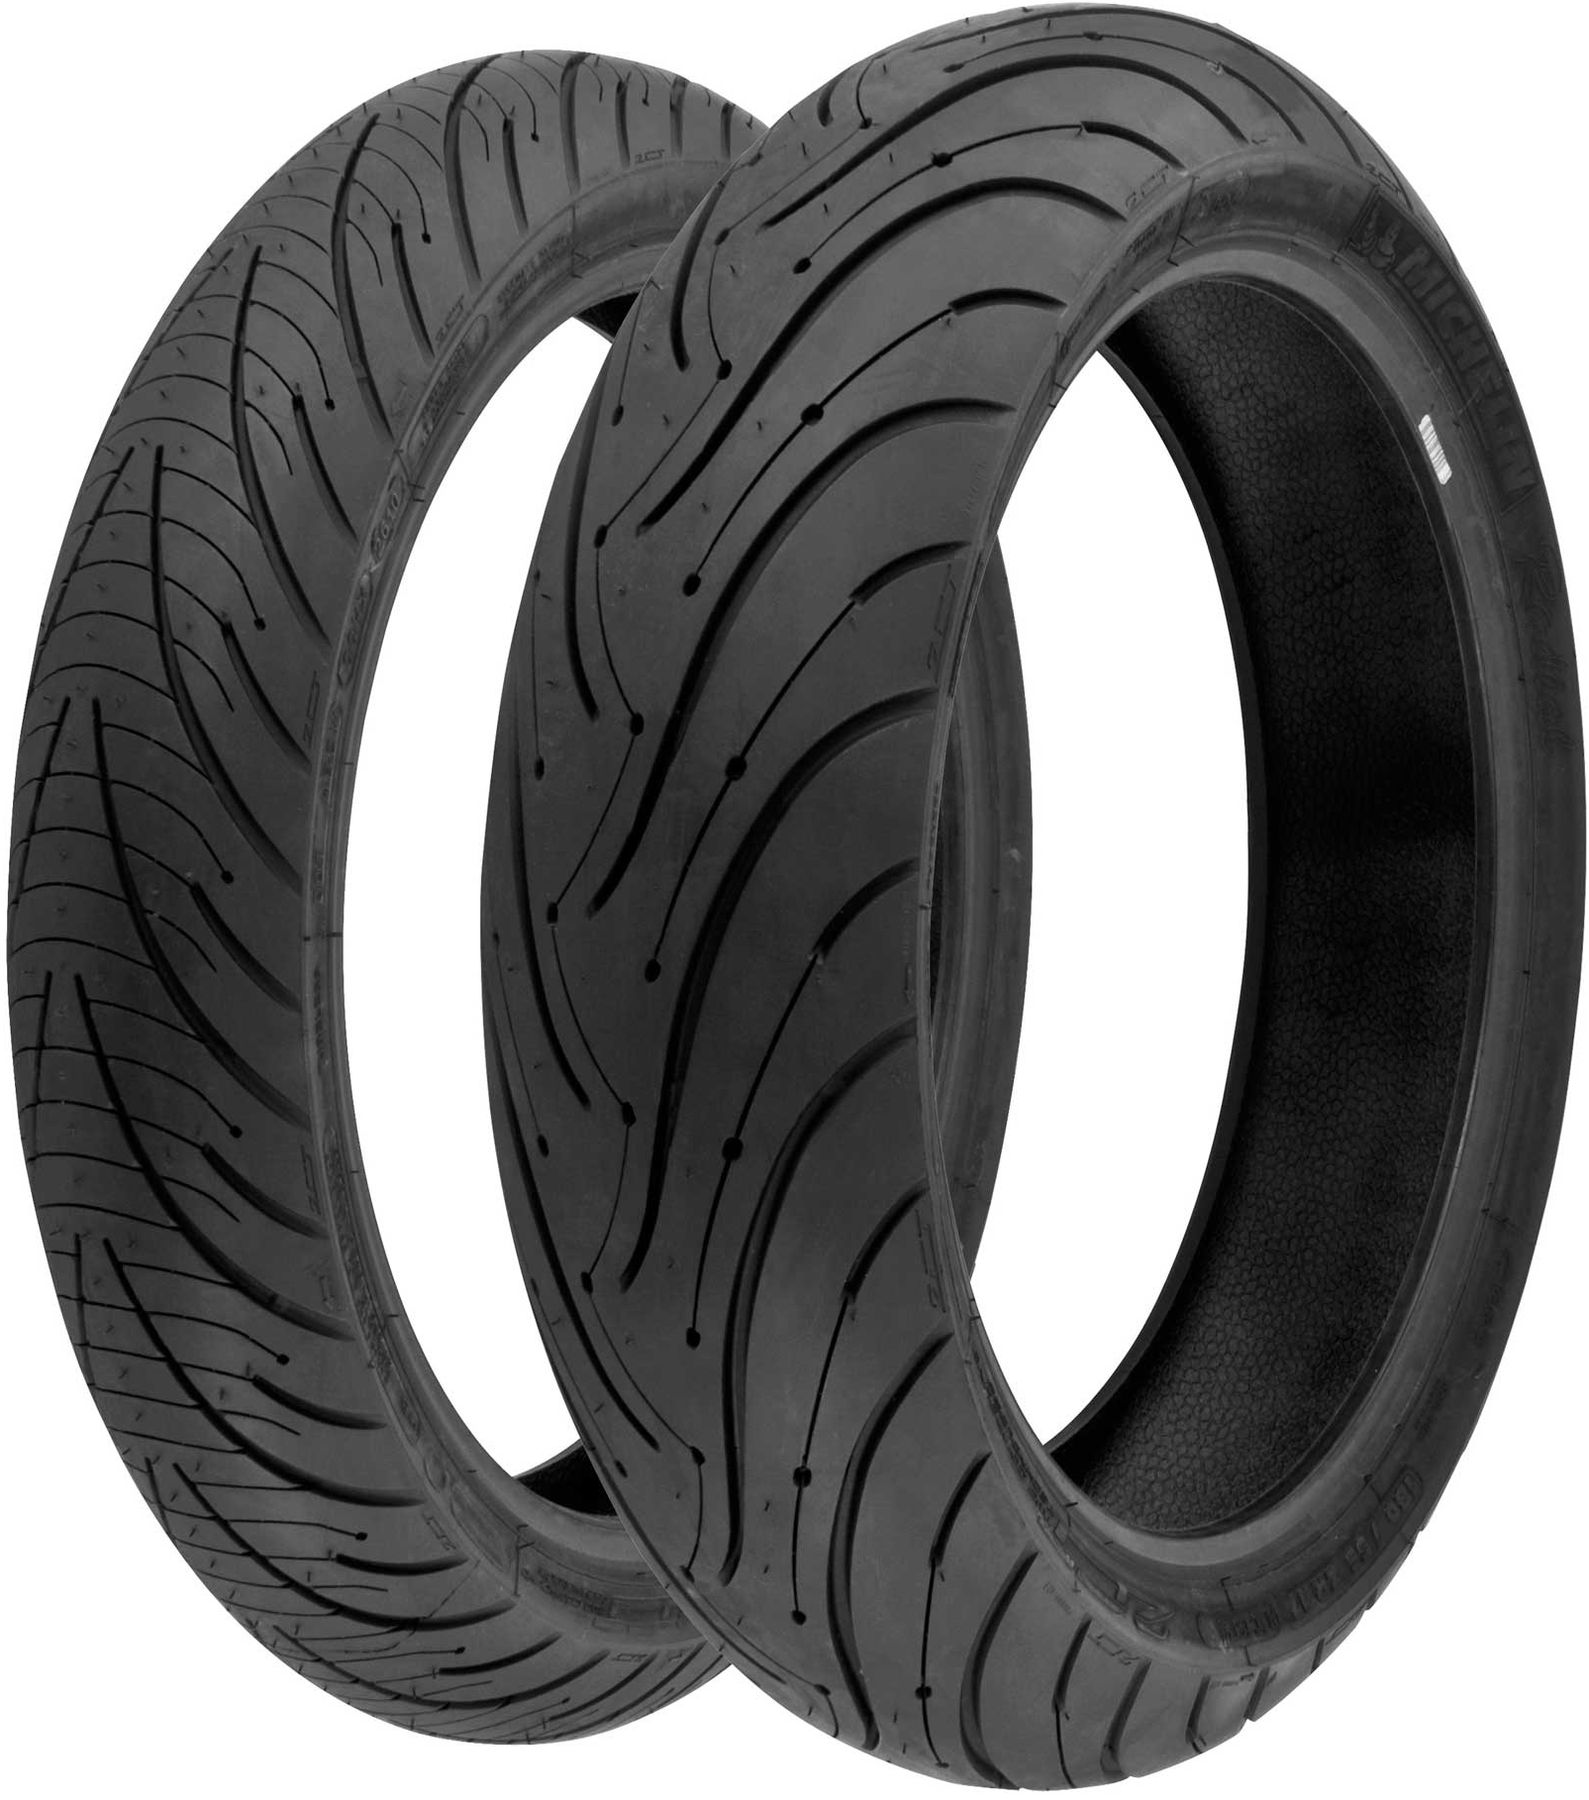 Michelin Pilot Road 3 120/70 ZR17 58W FRONT TL